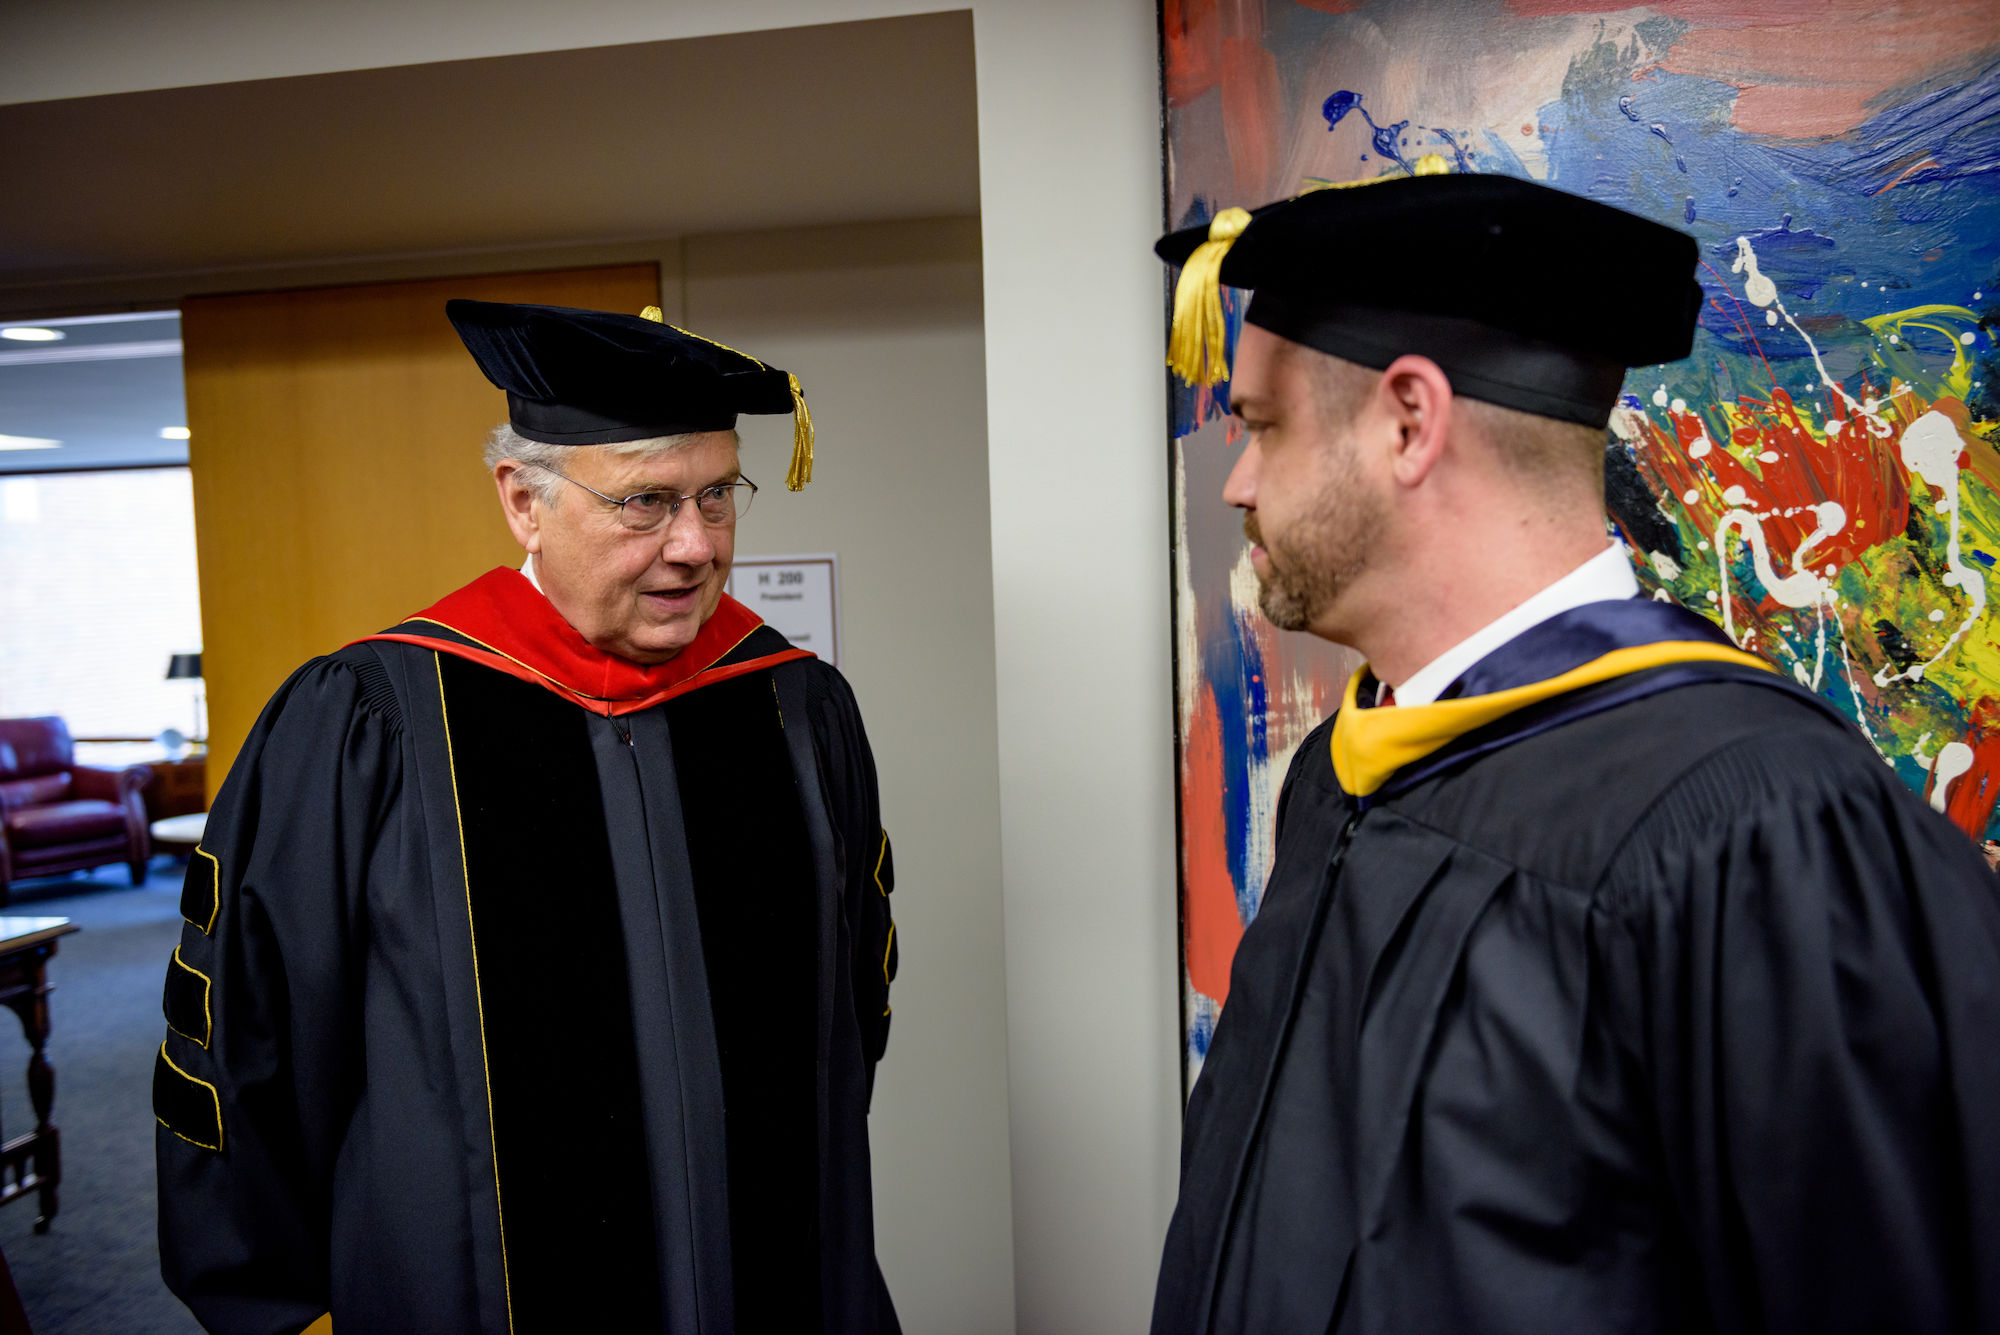 RHIT_Commencement_Platform_Party_Robing-21608.jpg